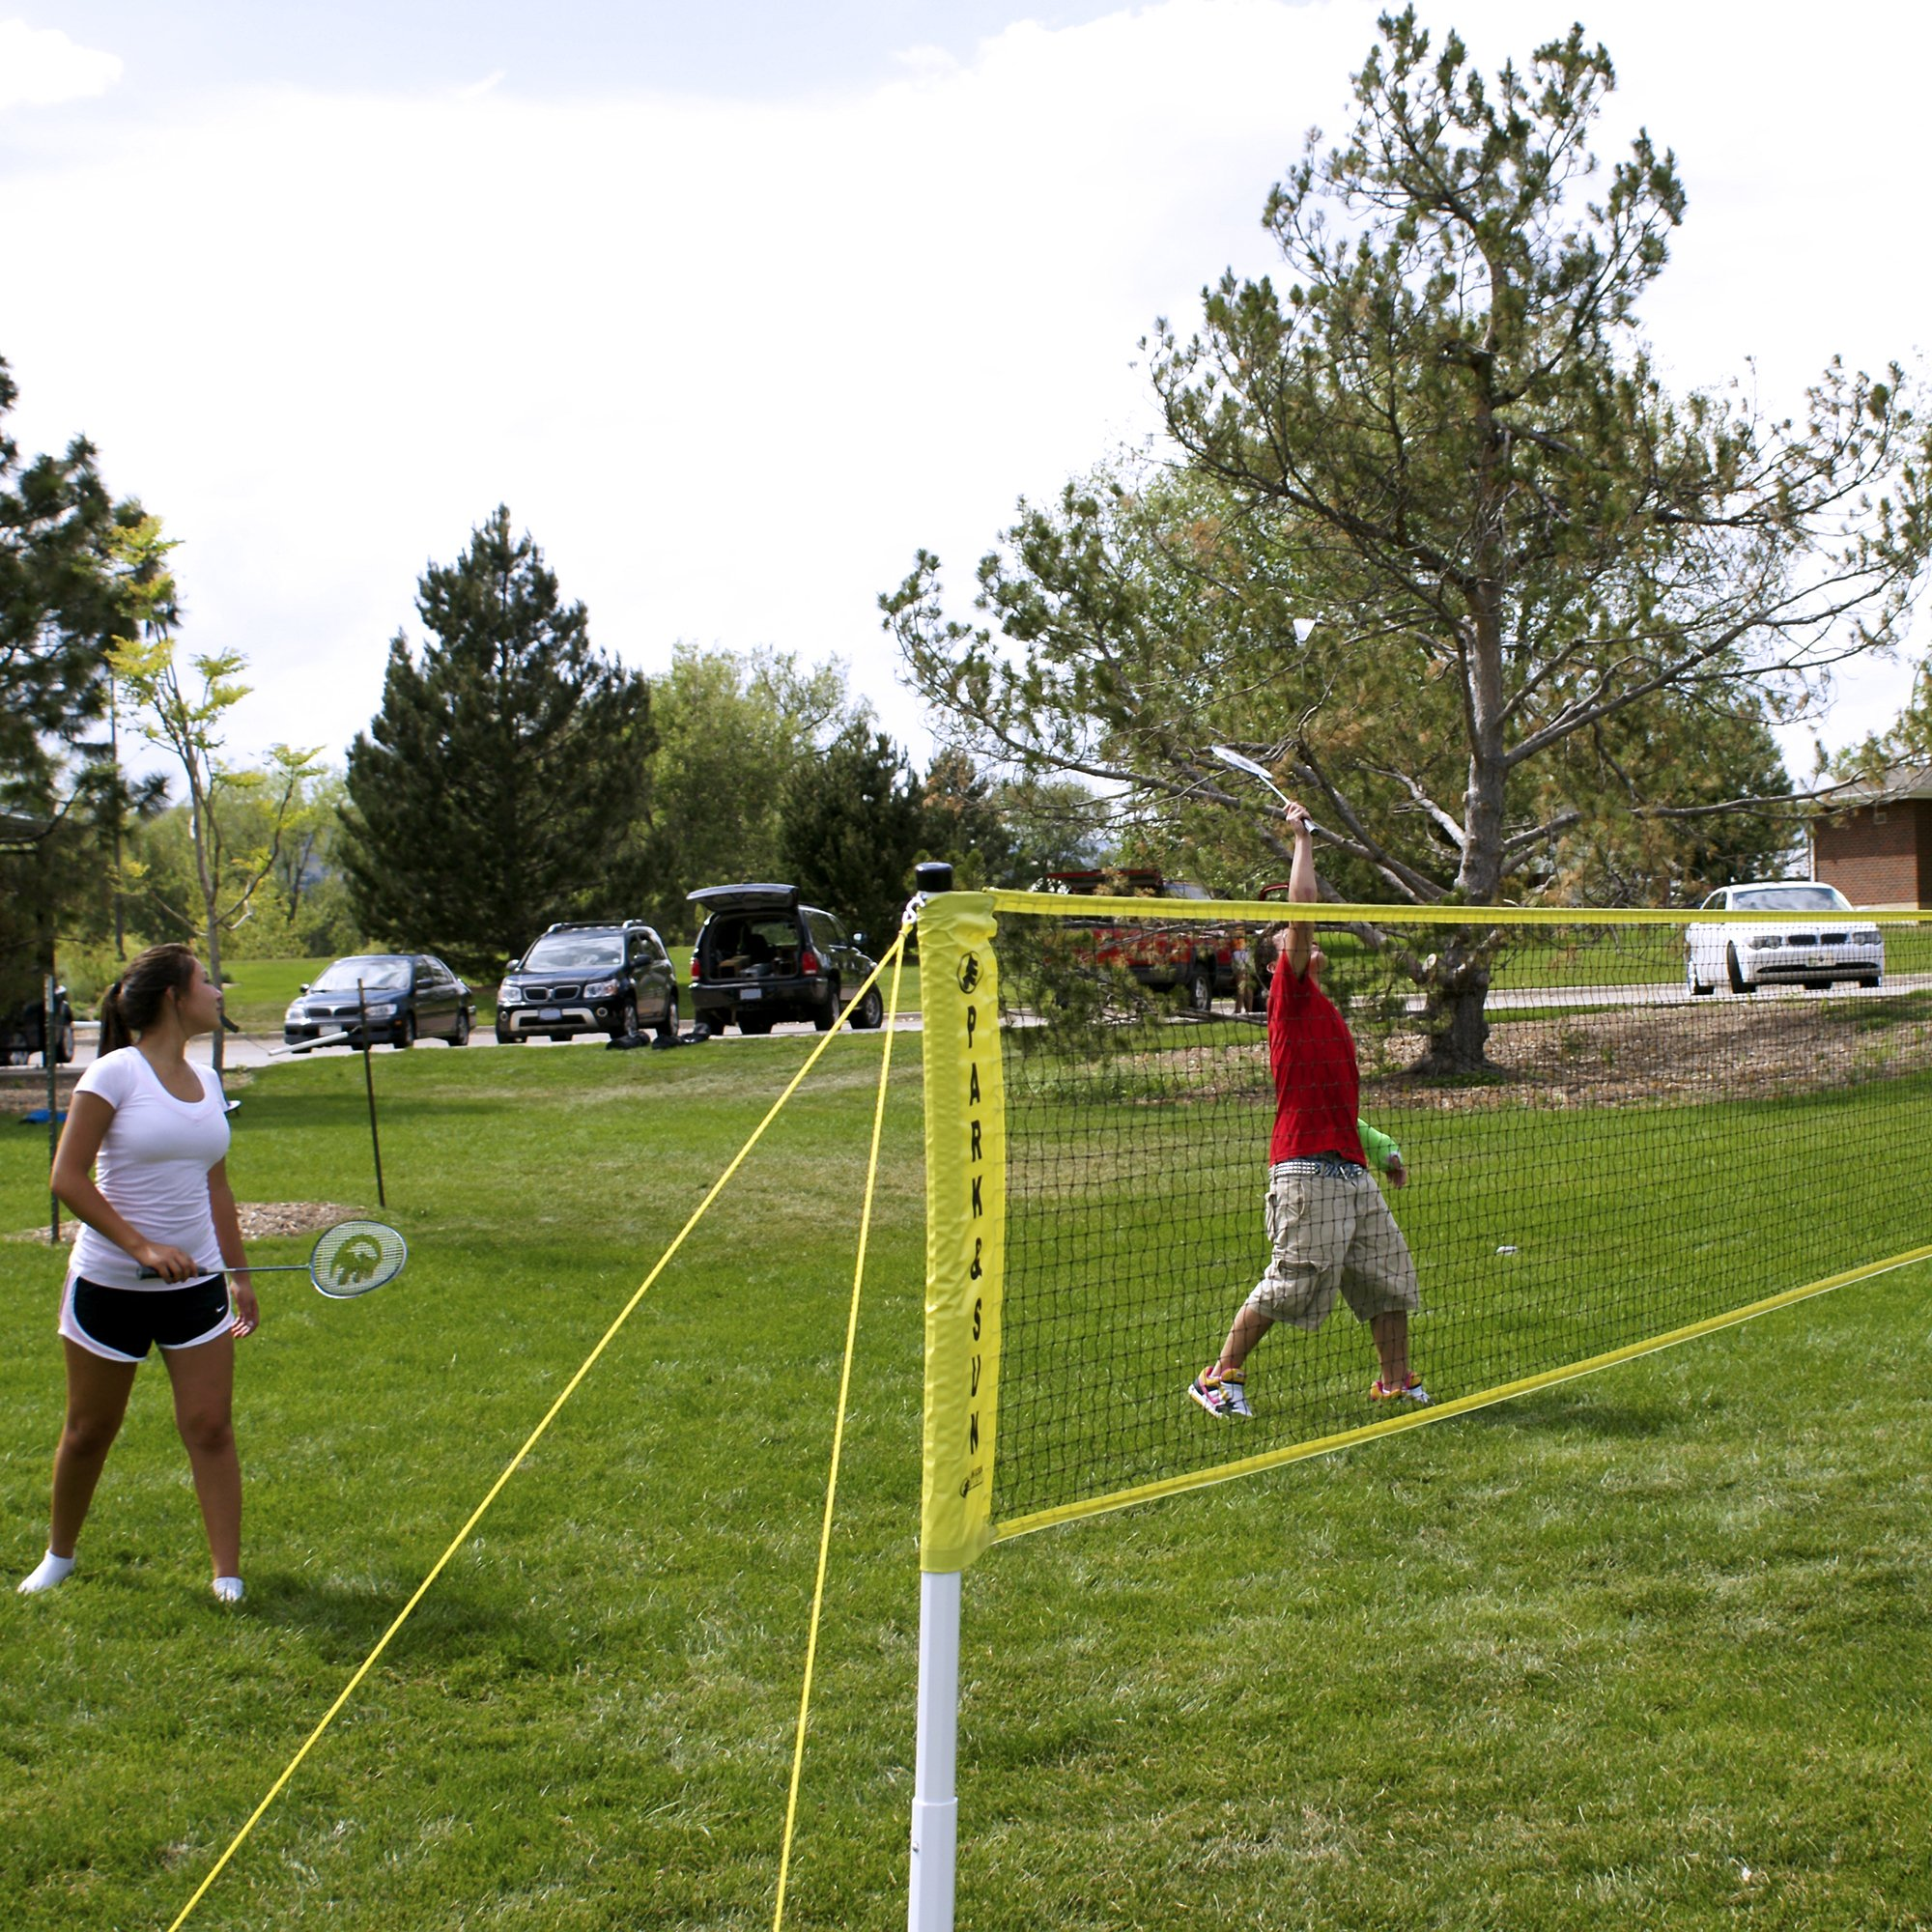 Park & Sun Sports Portable Indoor/Outdoor Badminton Net System with Carrying Bag and Accessories: Tournament Series by Park & Sun Sports (Image #3)